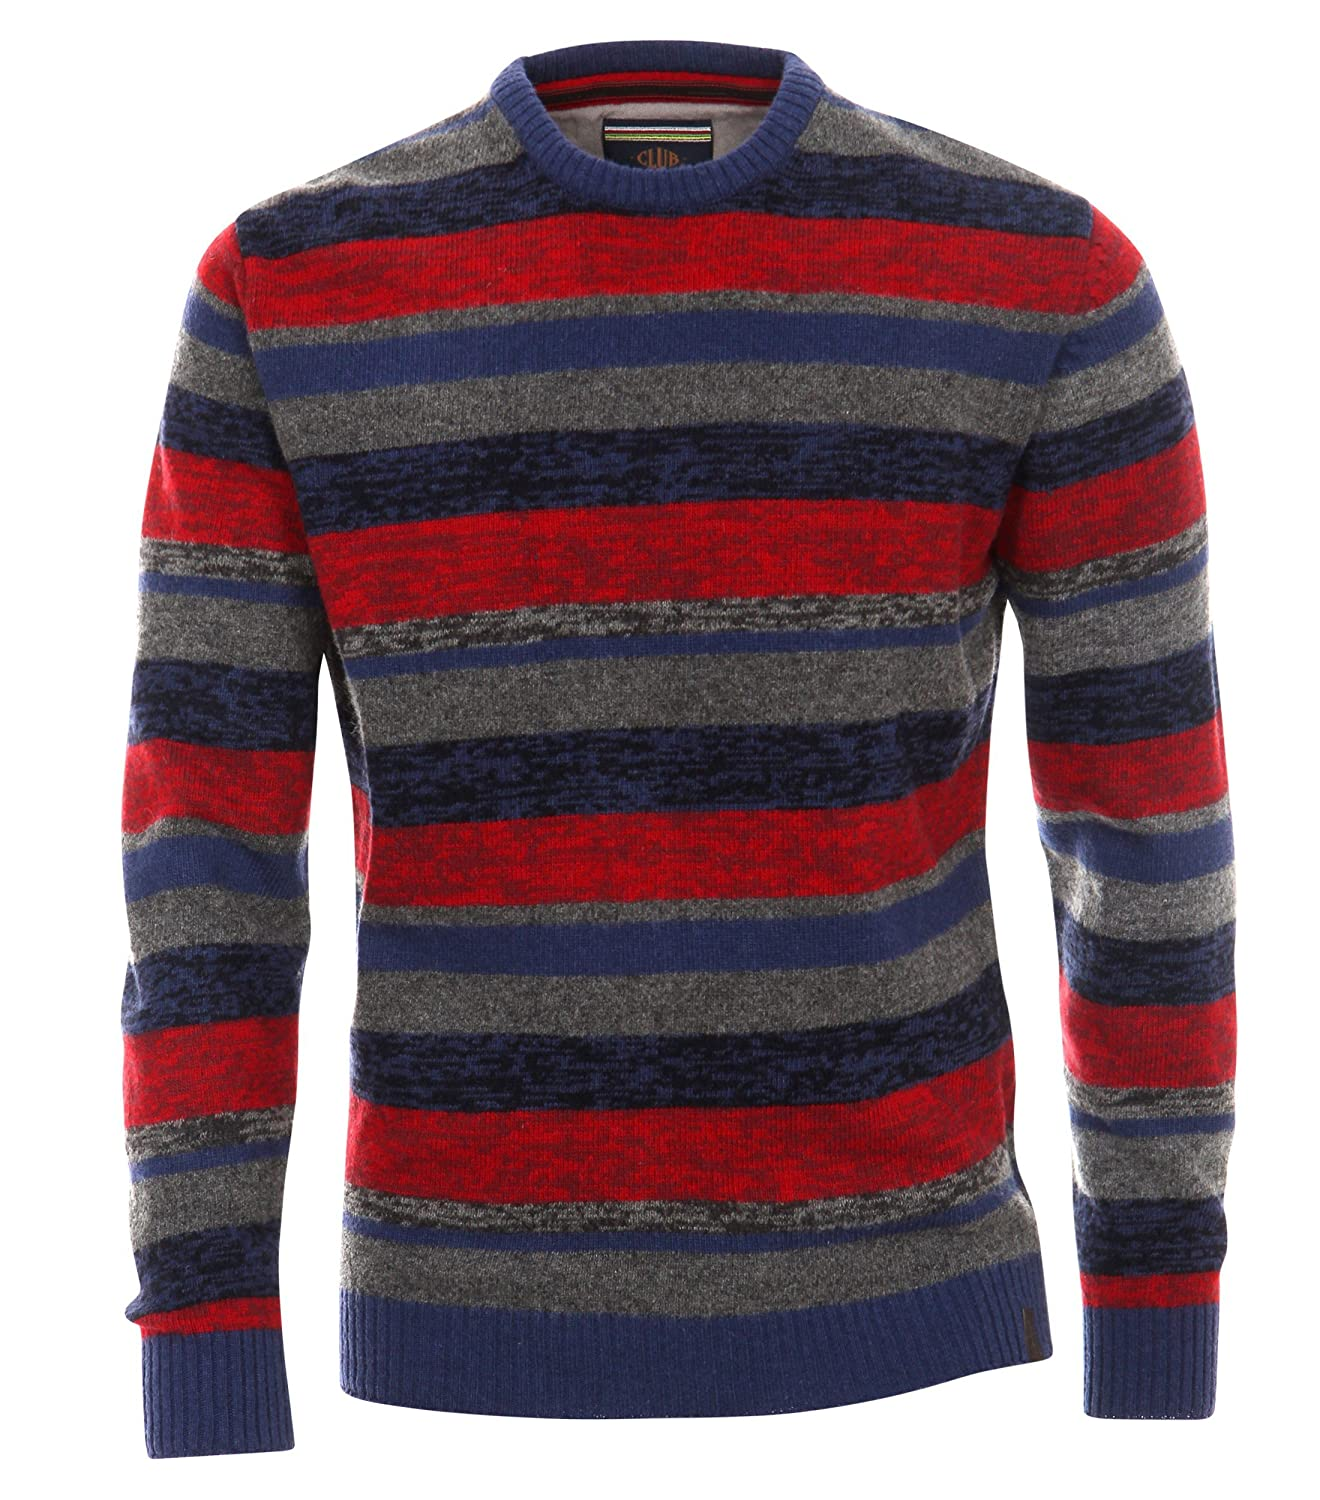 Michaelax-Fashion-Trade Men's Striped Long Sleeve Jumper